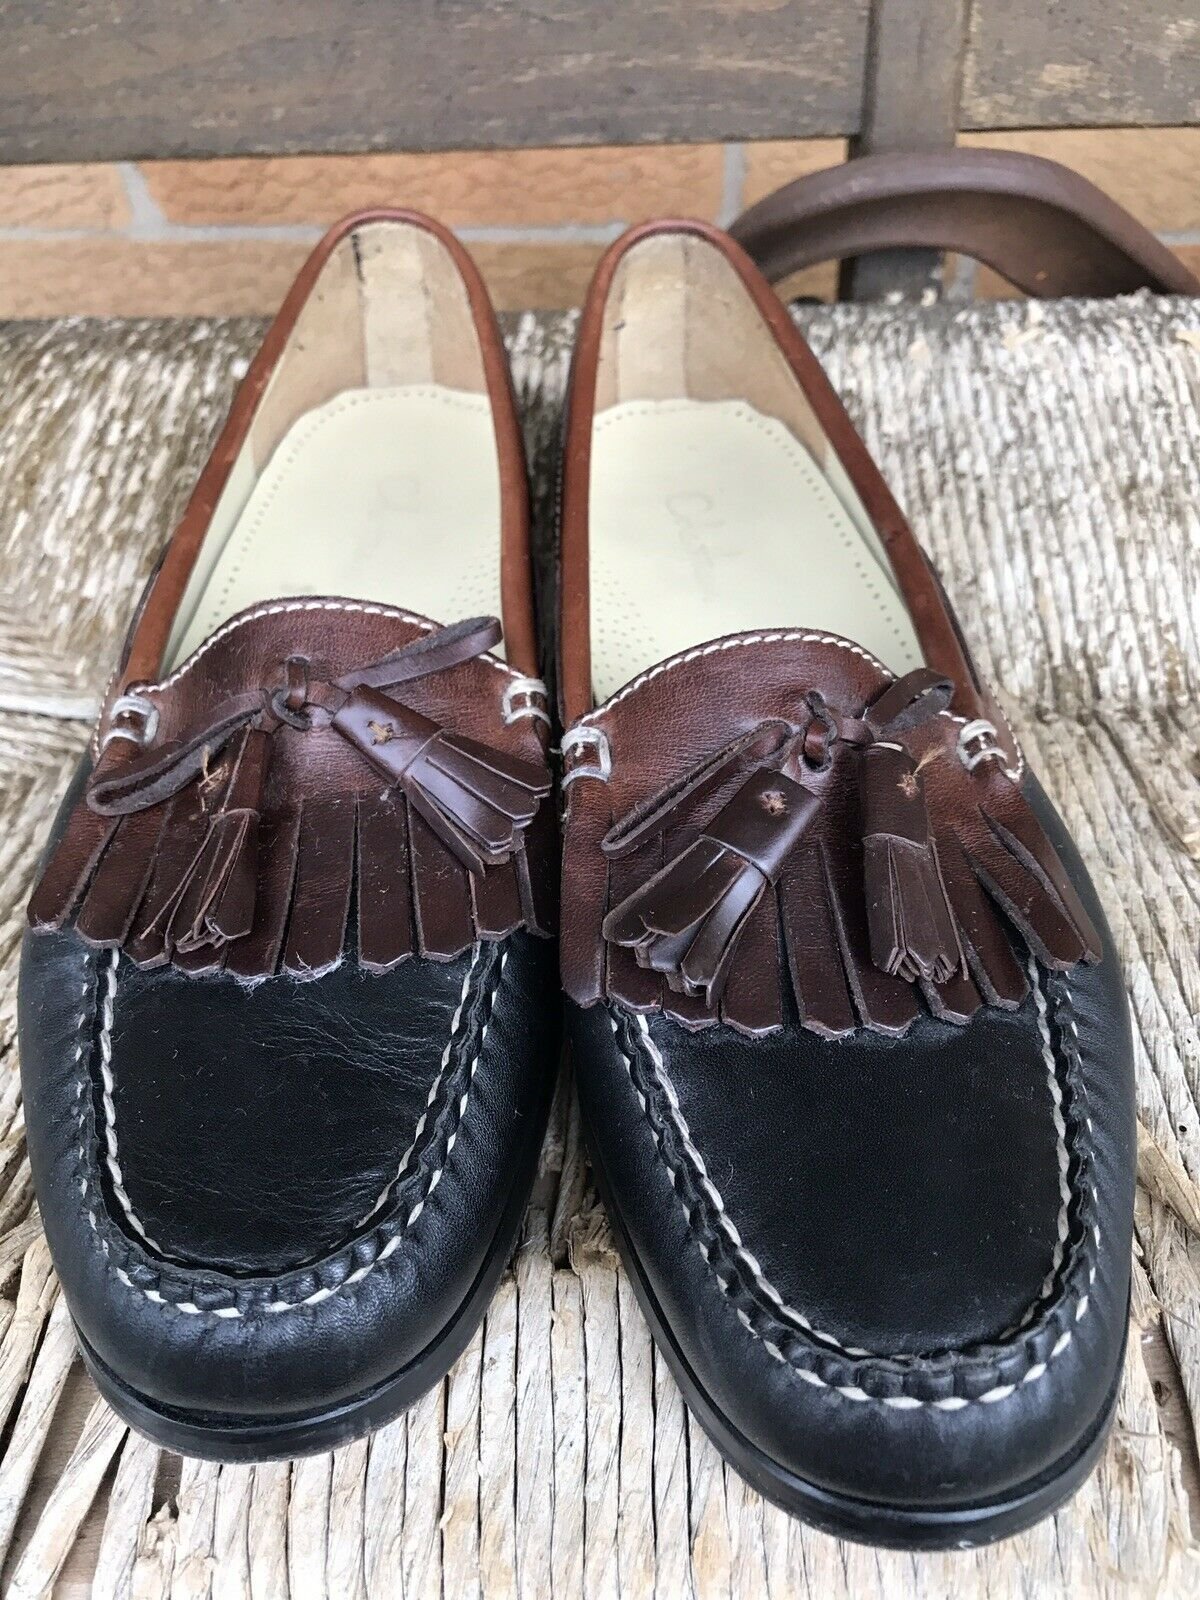 Cole Haan Tasseled Kilt Slip On Loafers 9 1 2 D Men's     Excellent PreOwned